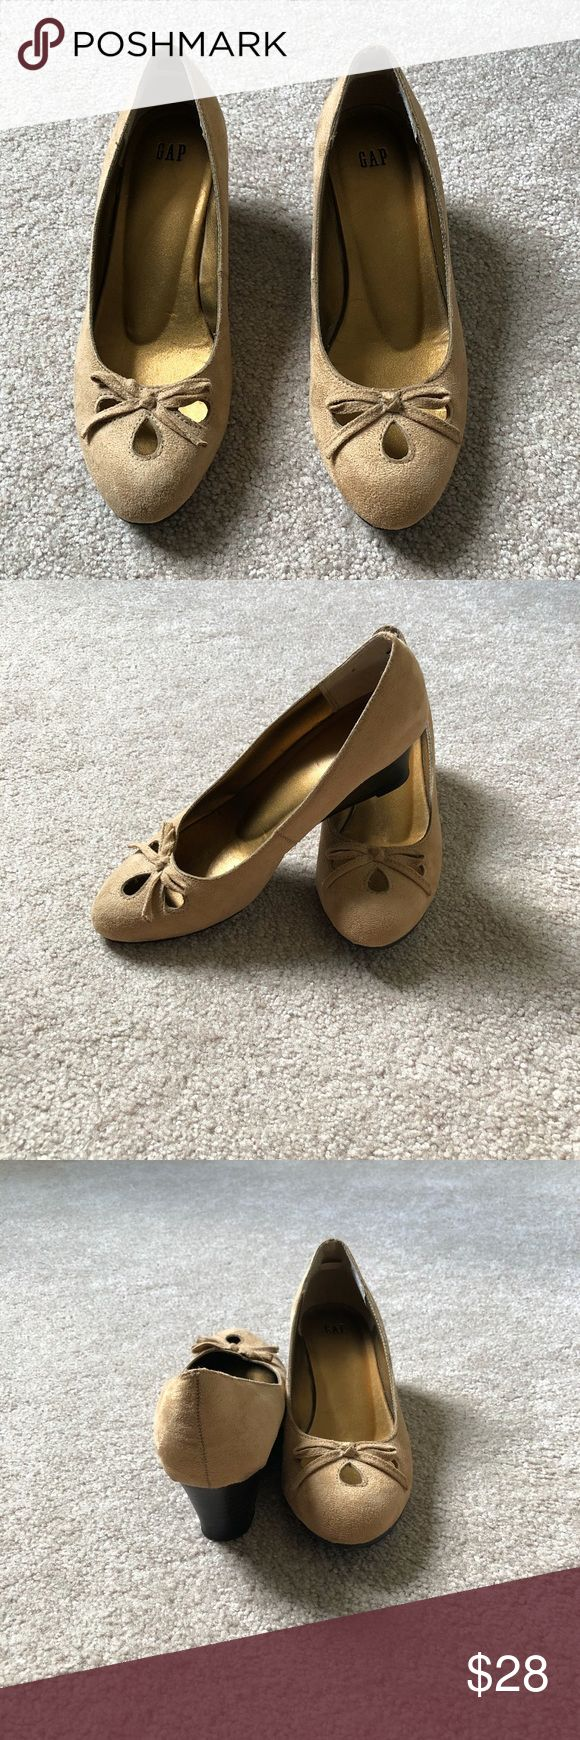 """GAP Suede Wedge Heels GAP suede wedge heels.  Size 7.  Camel color with 2"""" wedge heel.  These are in good excellent used condition with a few minor spots of dirt.  Worn only a handful of times.  Non-smoking, non-pet home. GAP Shoes Wedges"""